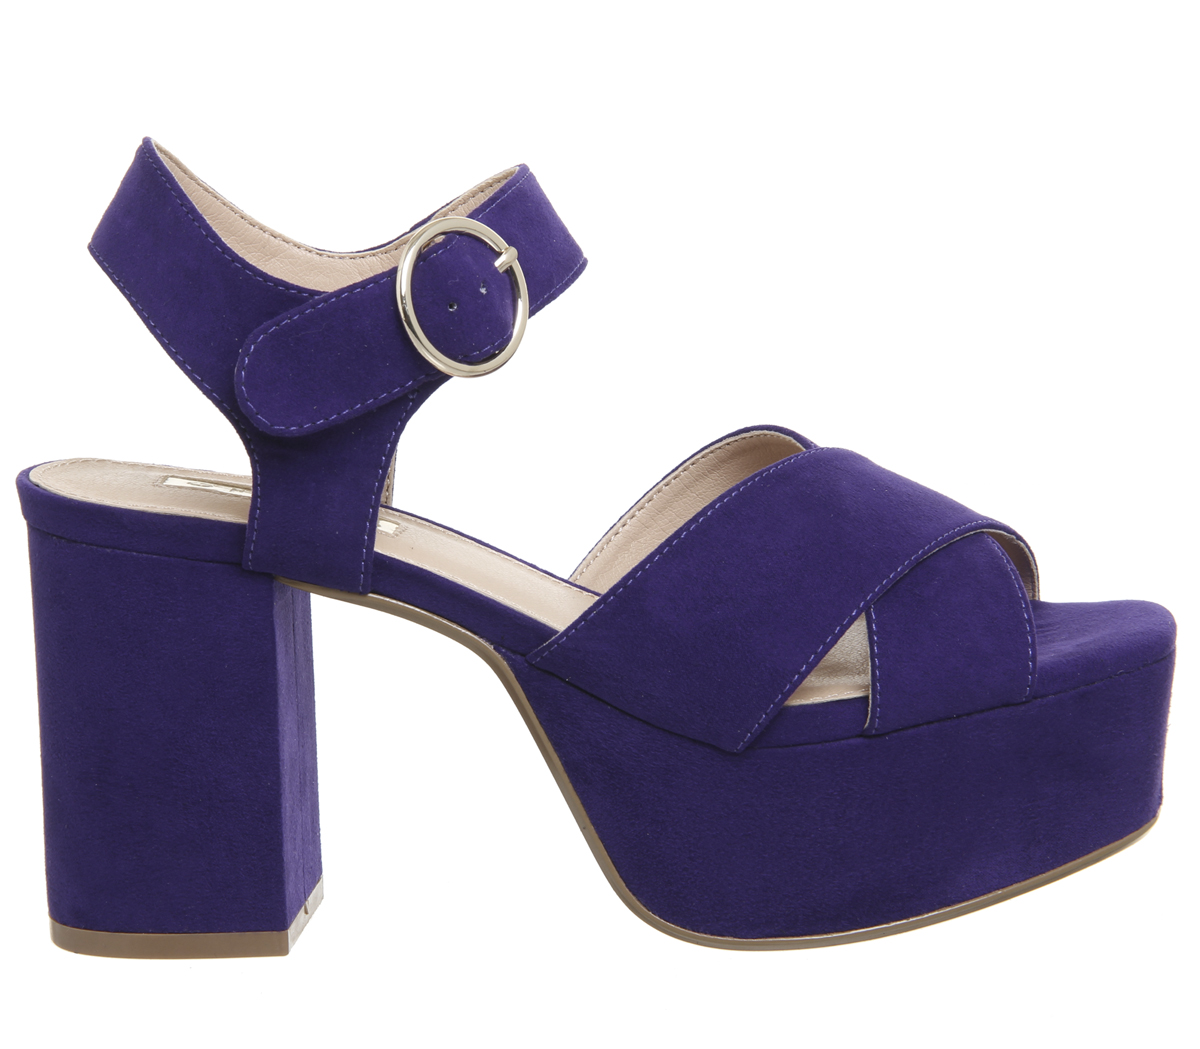 Damenschuhe PURPLE Office Macaroni Heavy Chunky Platforms PURPLE Damenschuhe Heels 97eea5